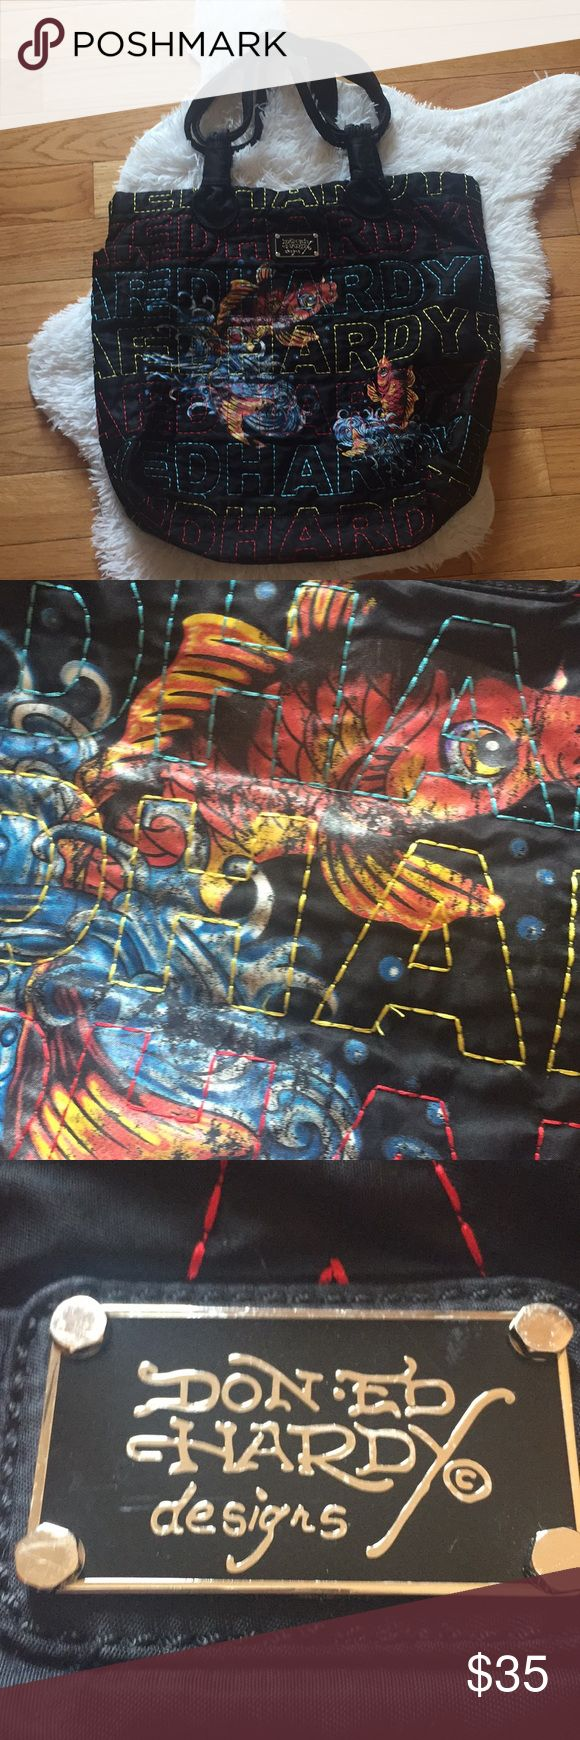 """Don Ed Hardy """"hobo"""" bag Coy fish design. Has been used but it is still in very good condition (only issue is a few stray threads) ❤️Reasonable offers welcome❤️ Don Ed Hardy Bags Hobos"""